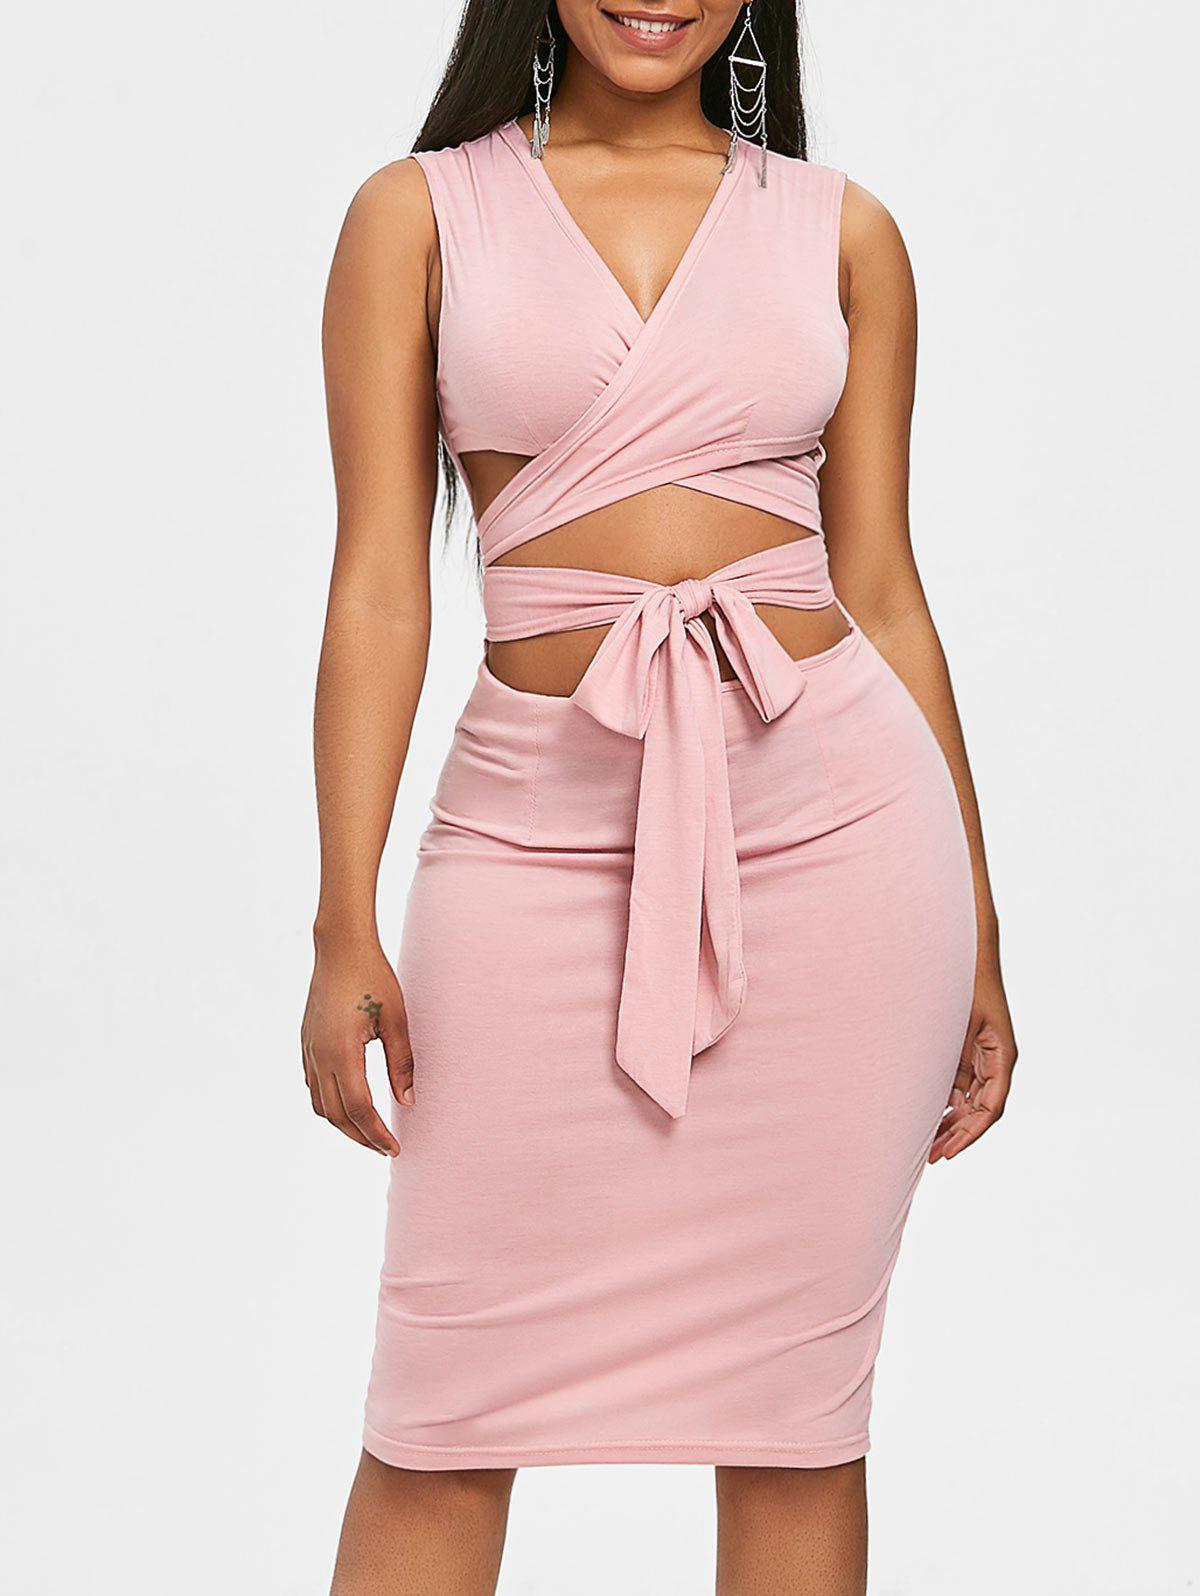 Shop Self Tie Low Cut Bodycon Dress